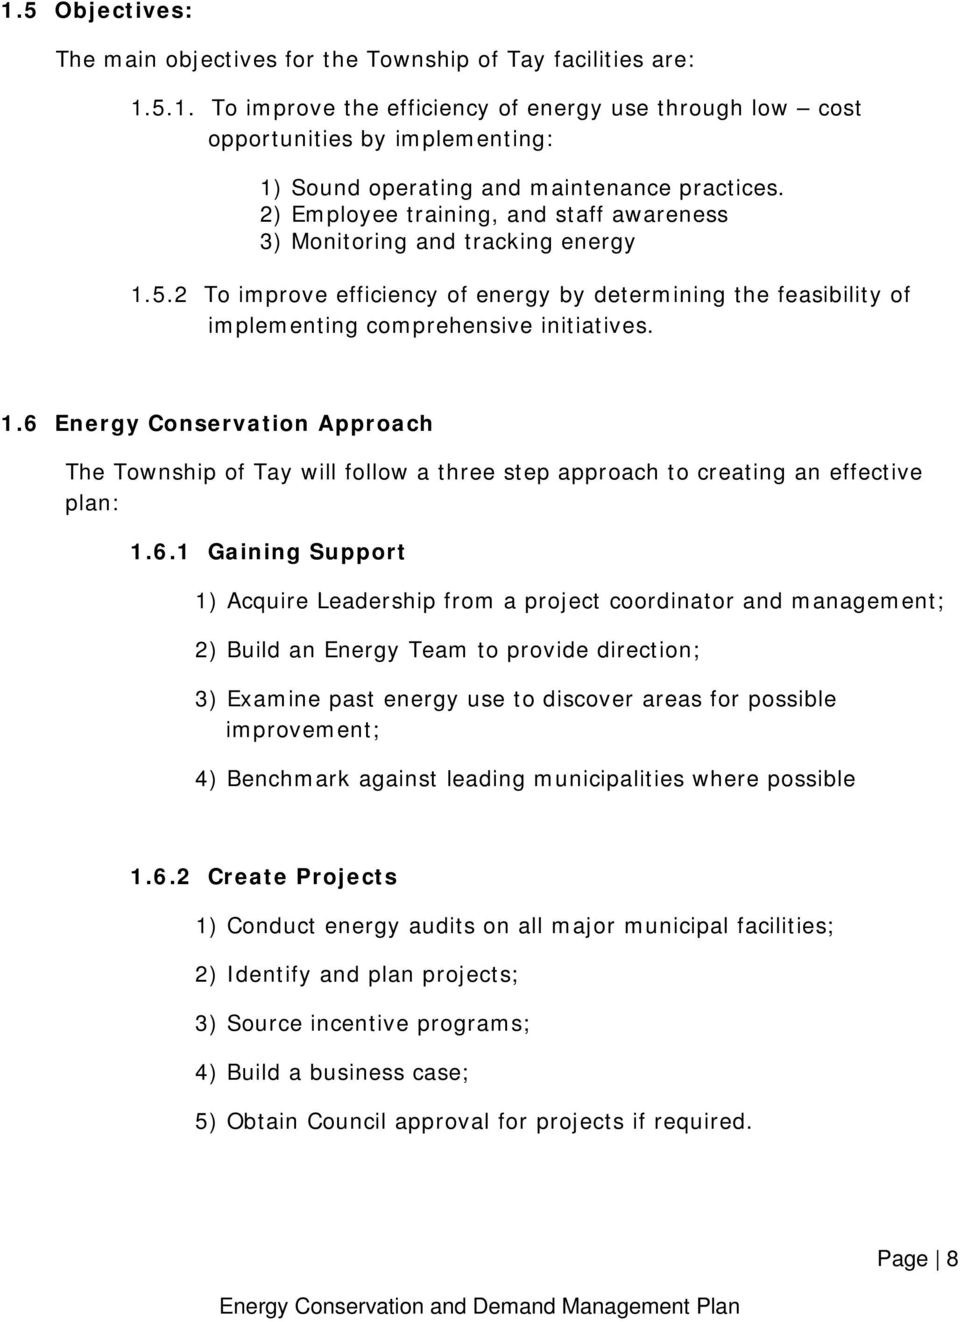 6.1 Gaining Support 1) Acquire Leadership from a project coordinator and management; 2) Build an Energy Team to provide direction; 3) Examine past energy use to discover areas for possible